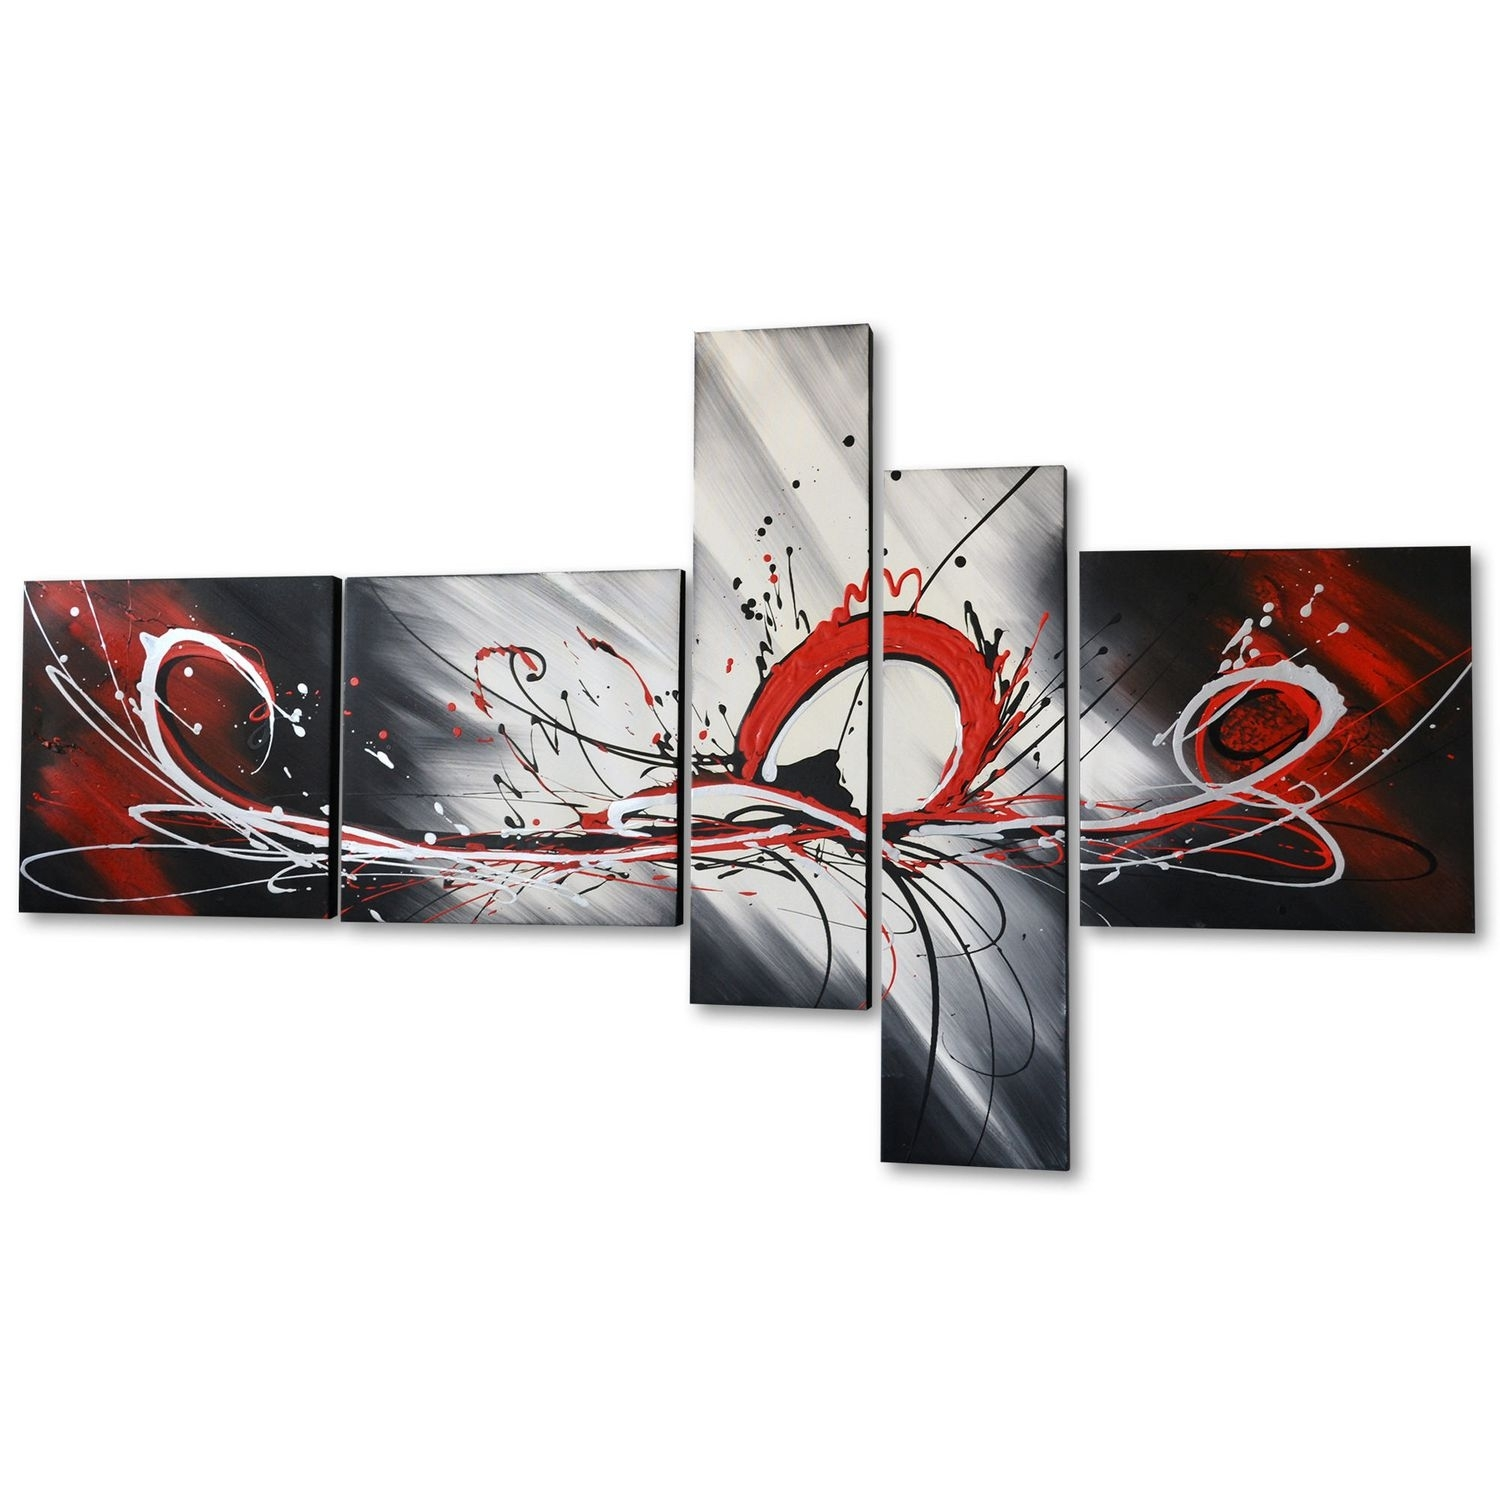 Design Art – Red Splash Hand Painted Textured Oil Painting On Throughout 2018 Canvas Wall Art In Canada (View 14 of 15)